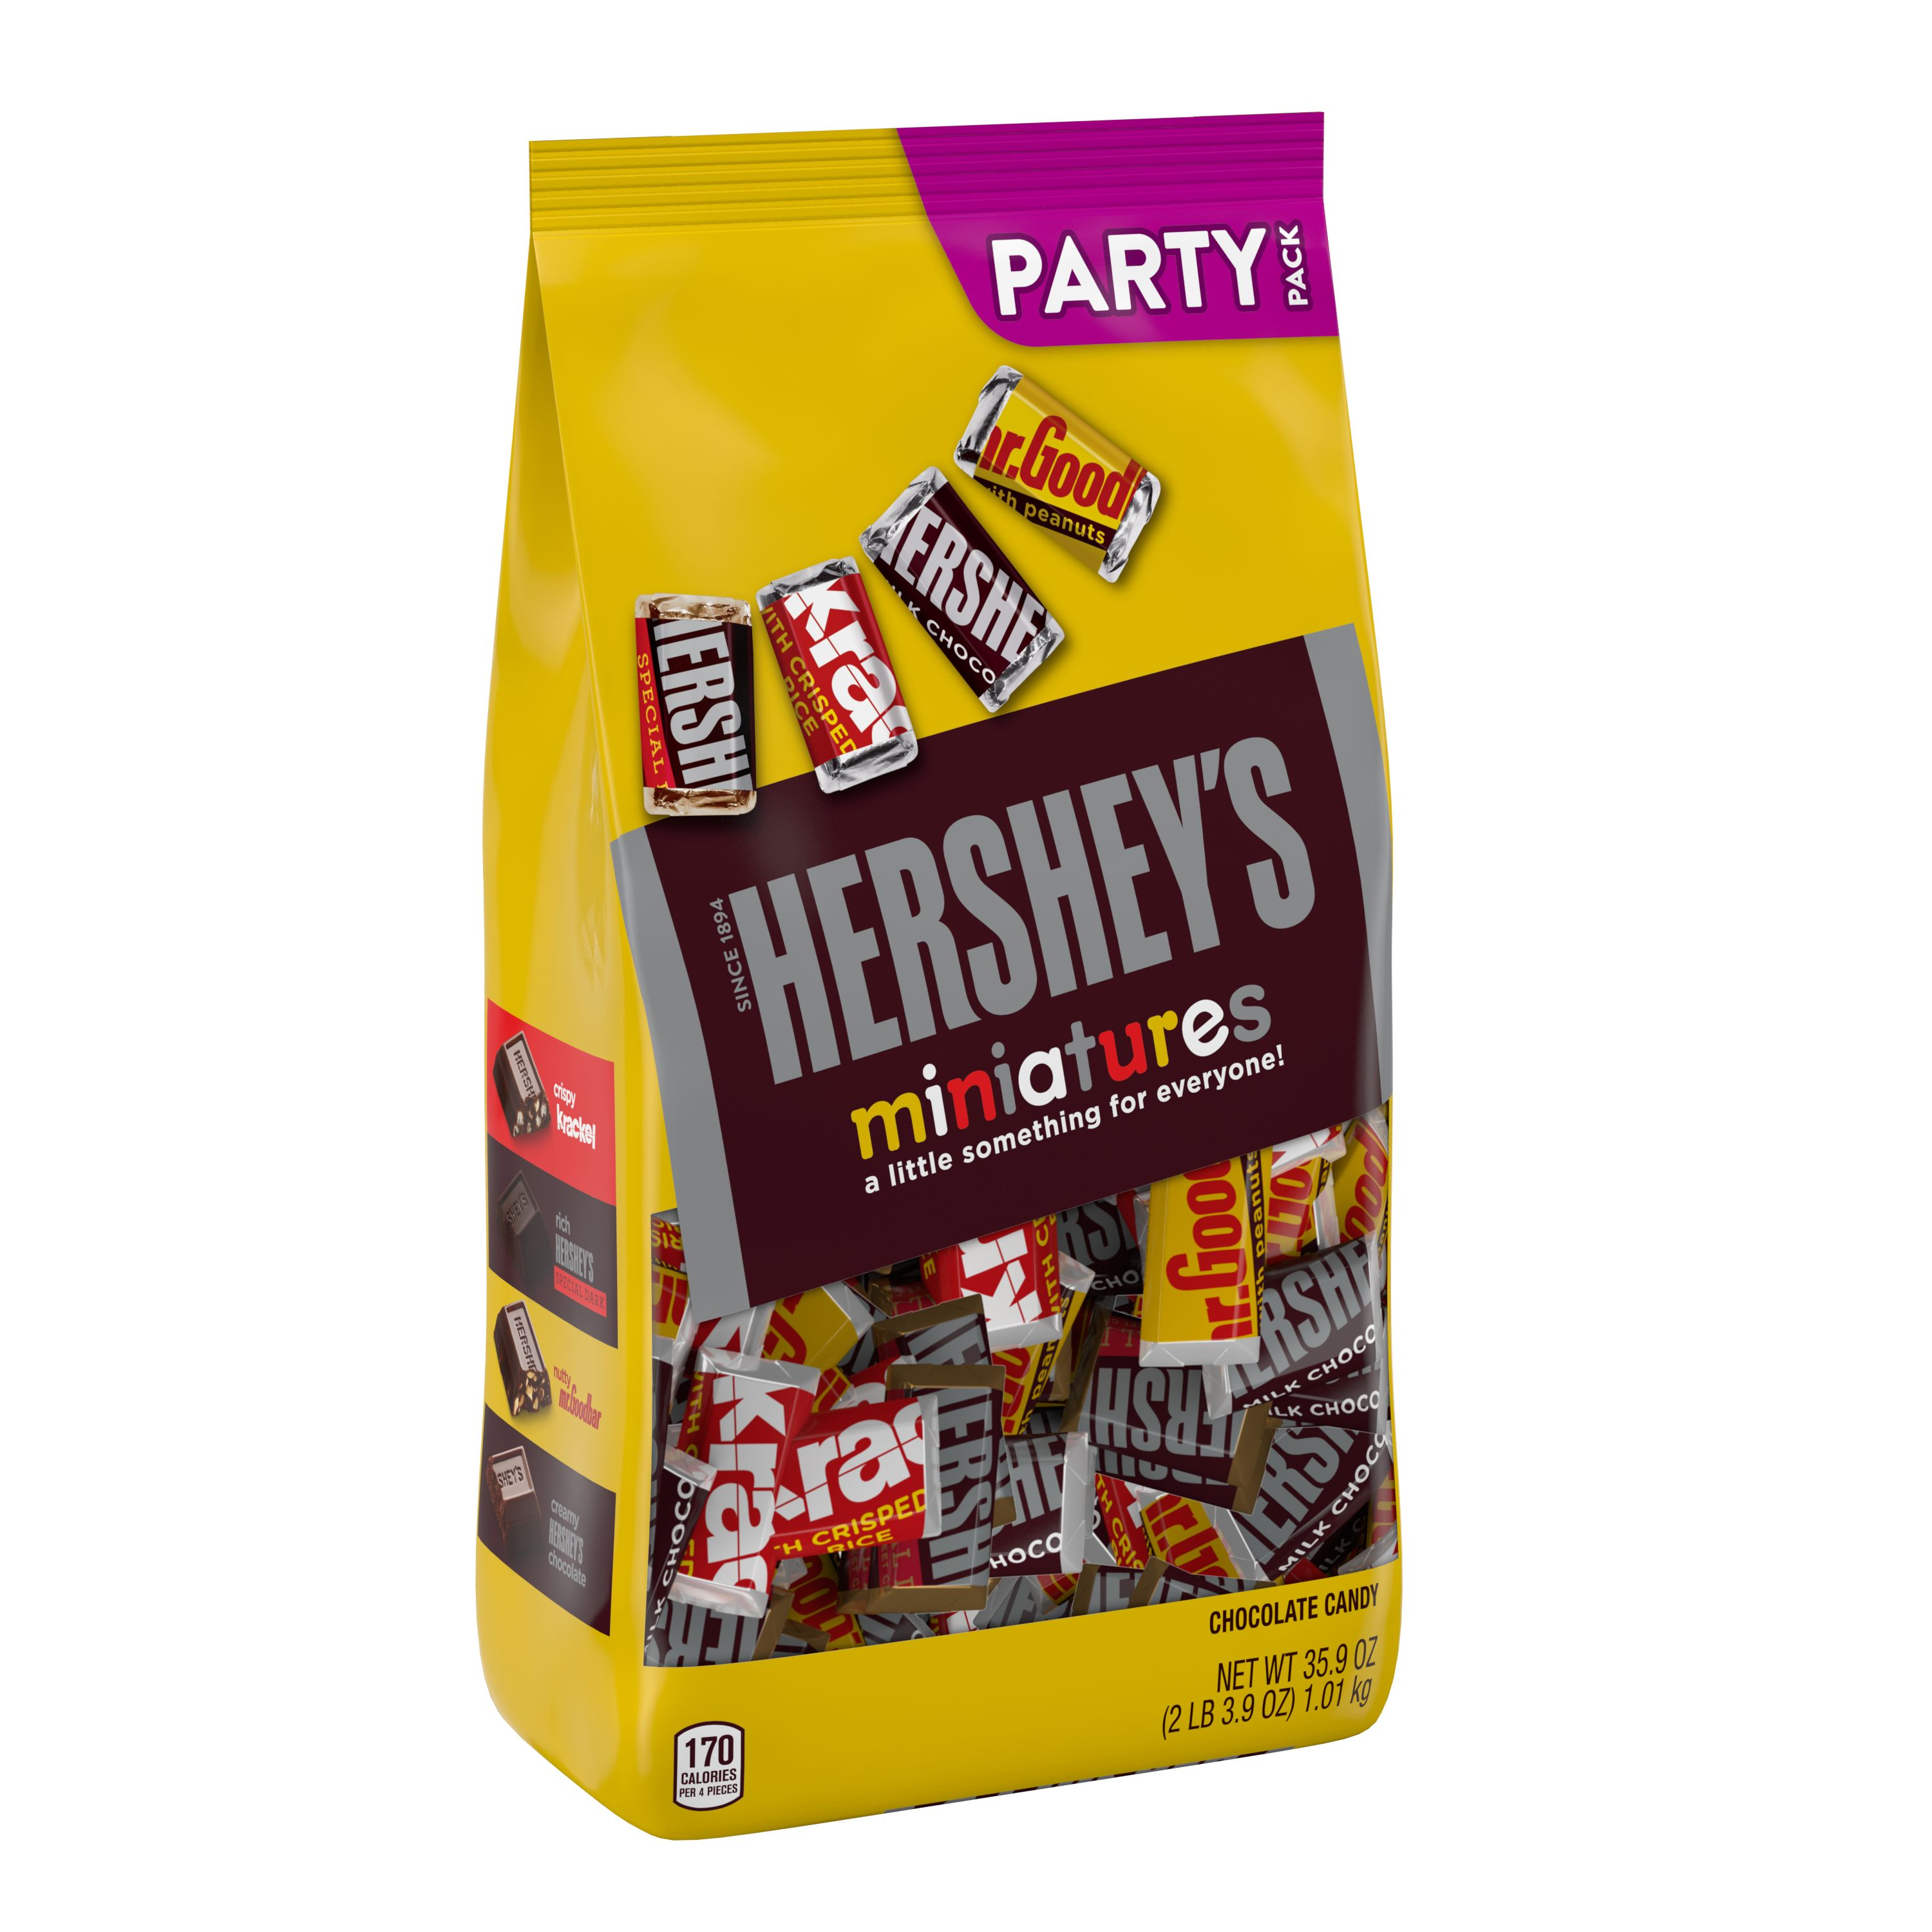 HERSHEY'S Miniatures Assorted Chocolate Candy, Individually Wrapped, 35.9 oz, Party Bag